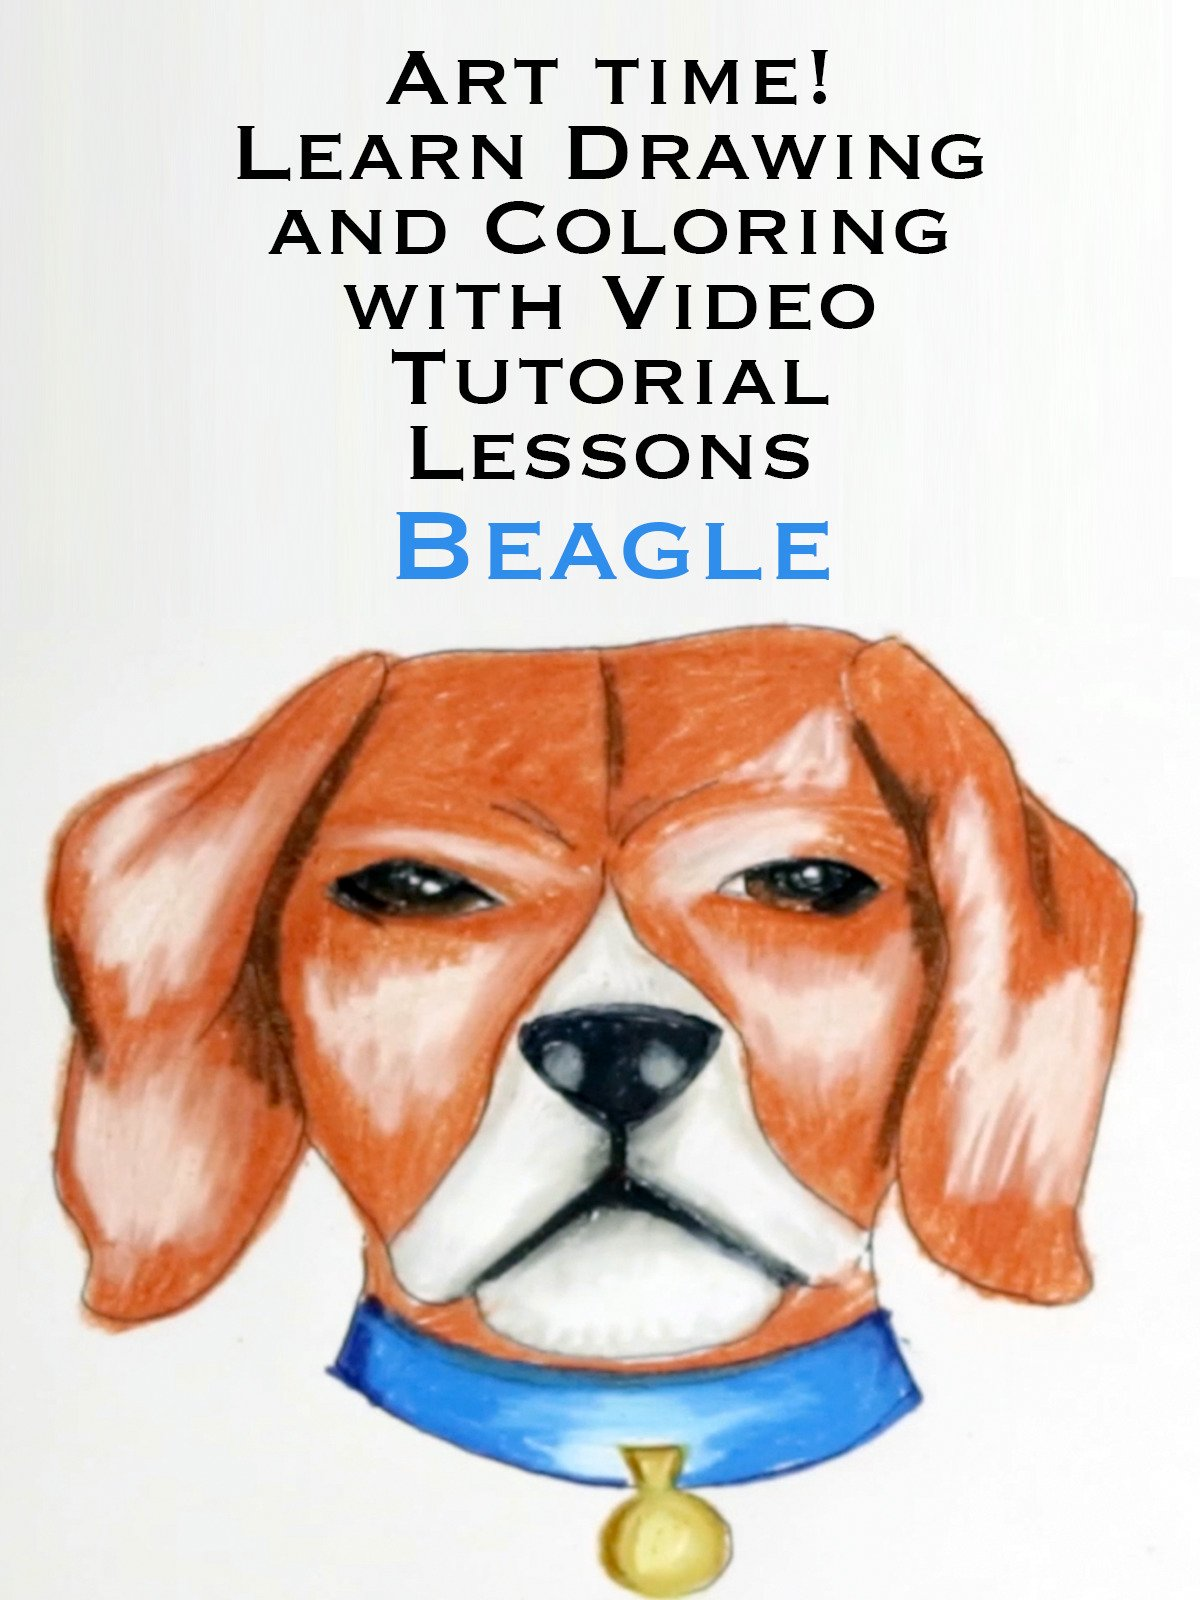 Art time! Learn Drawing and Coloring with Video Tutorial Lessons Beagle